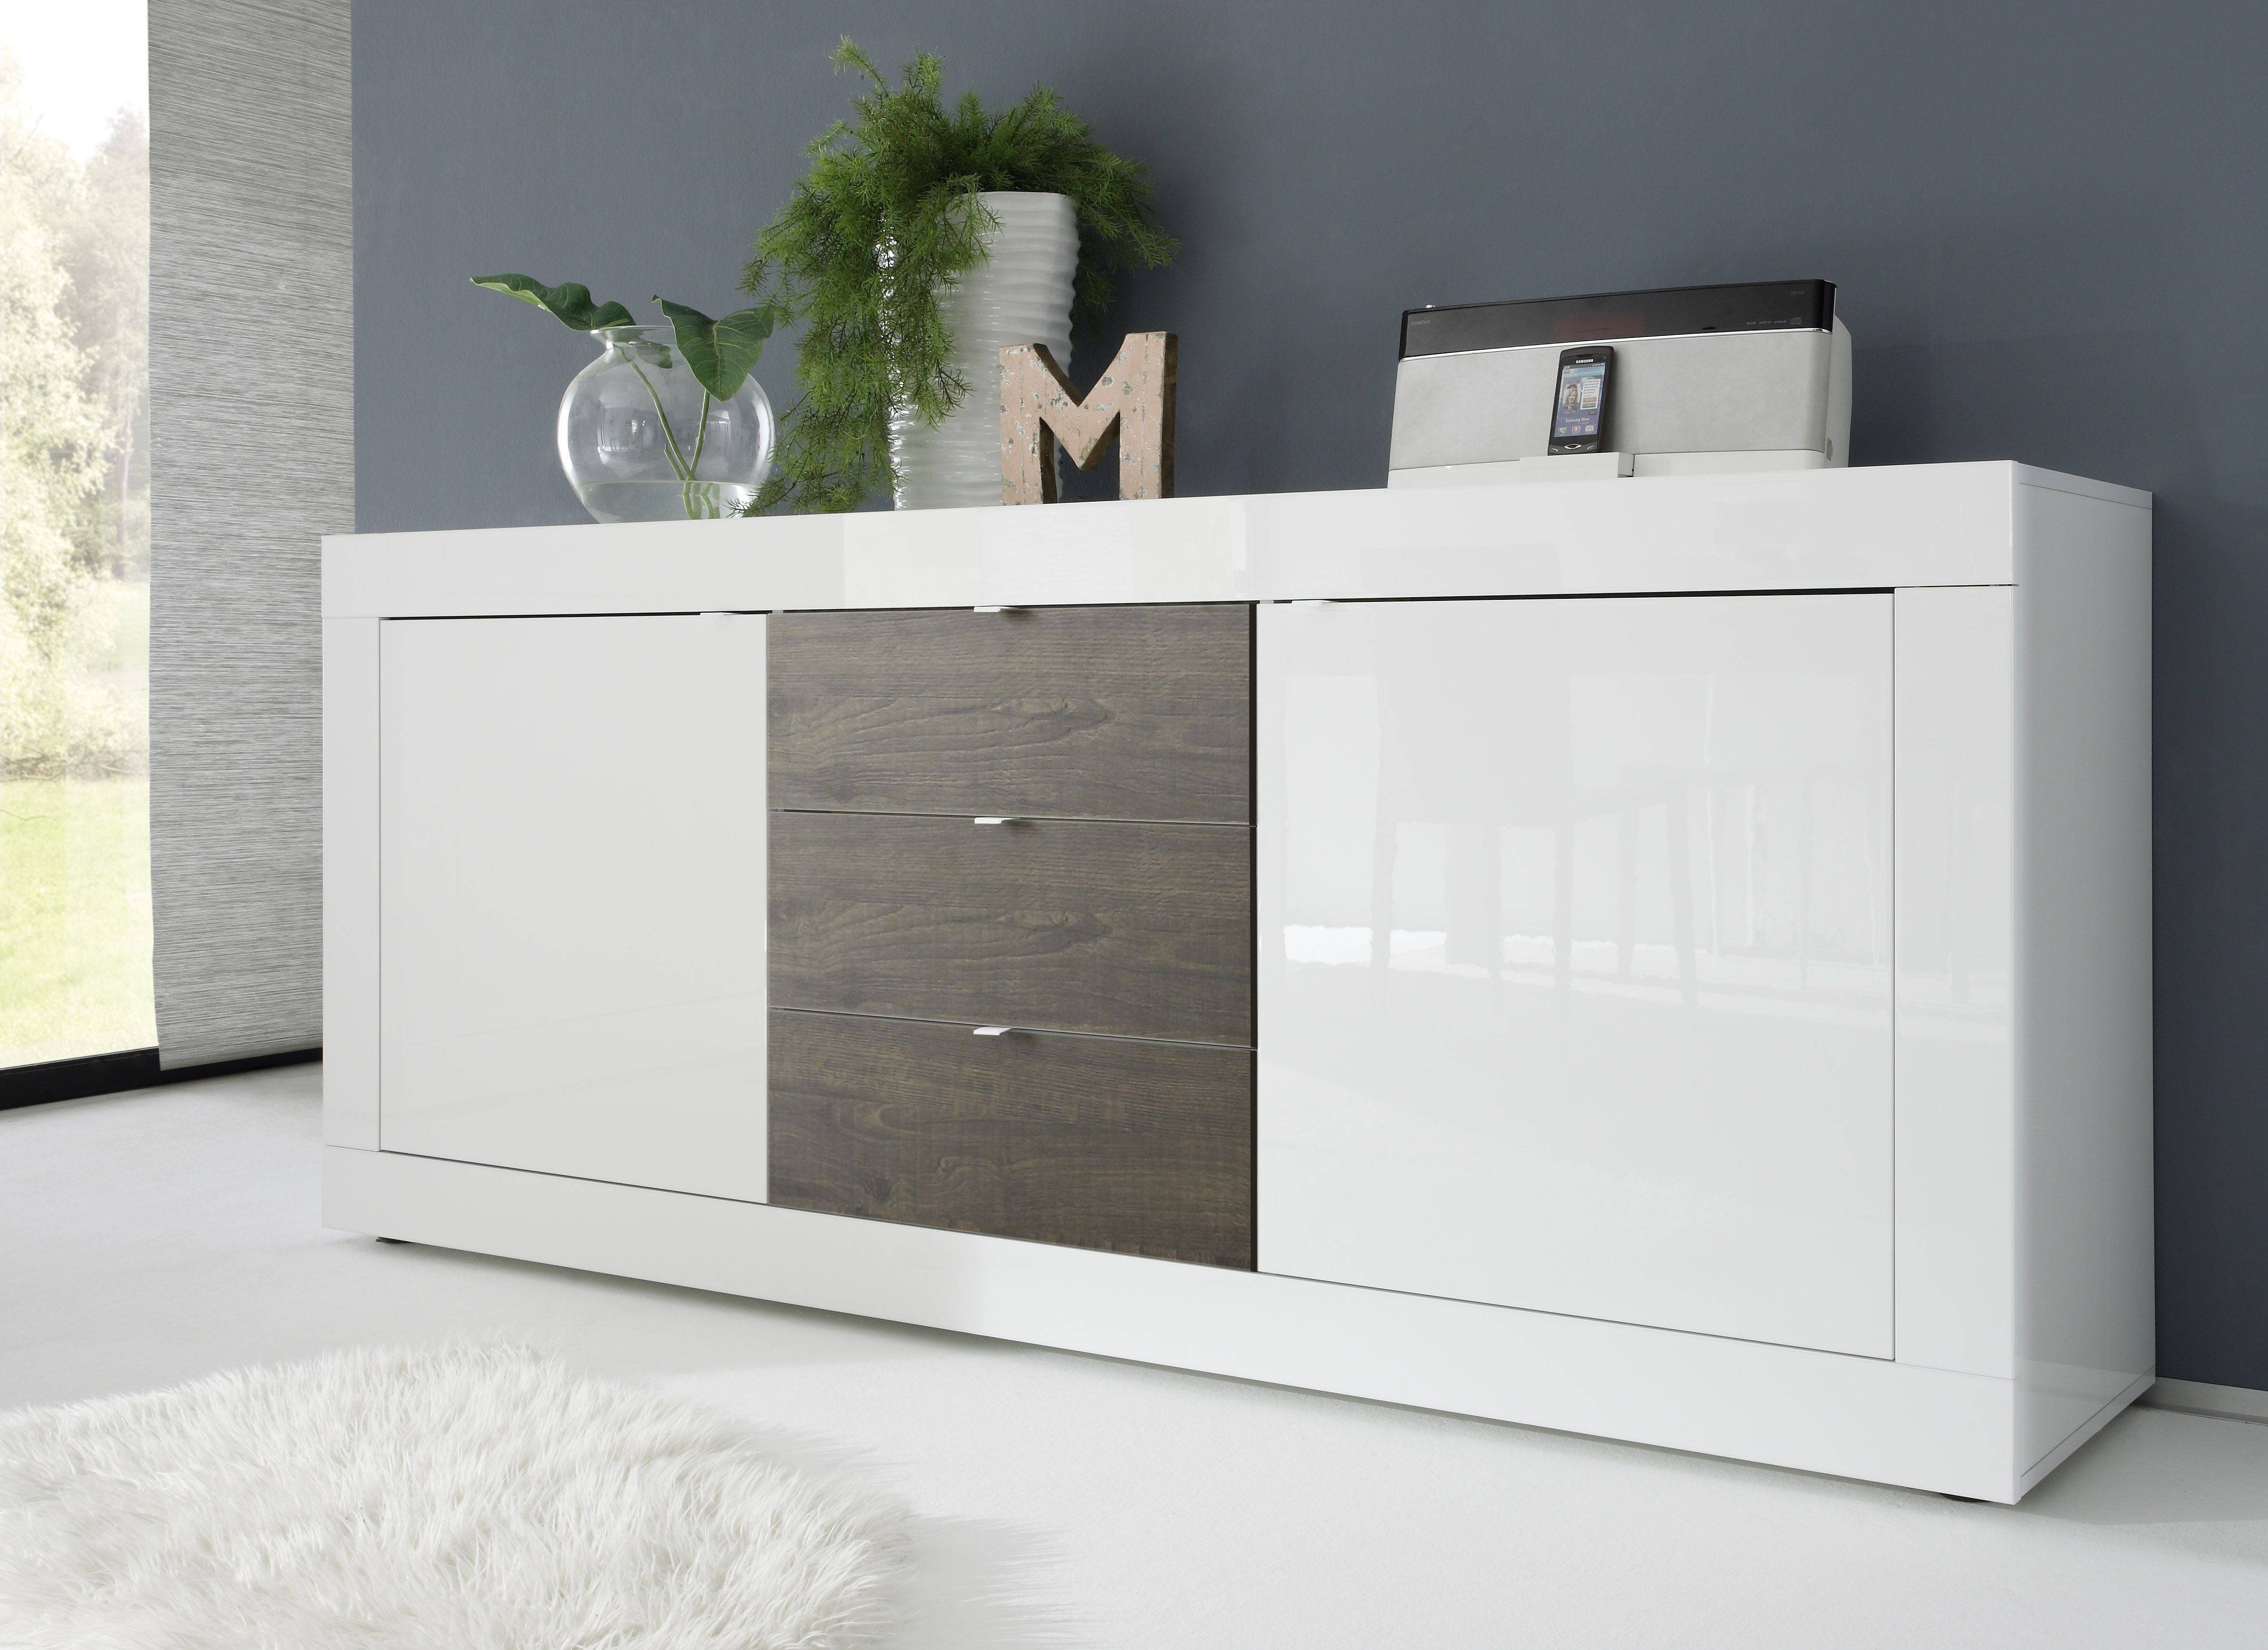 Dolcevita Ii White Gloss And Wenge Sideboard – Sideboards – Sena With High White Gloss Sideboards (View 13 of 15)